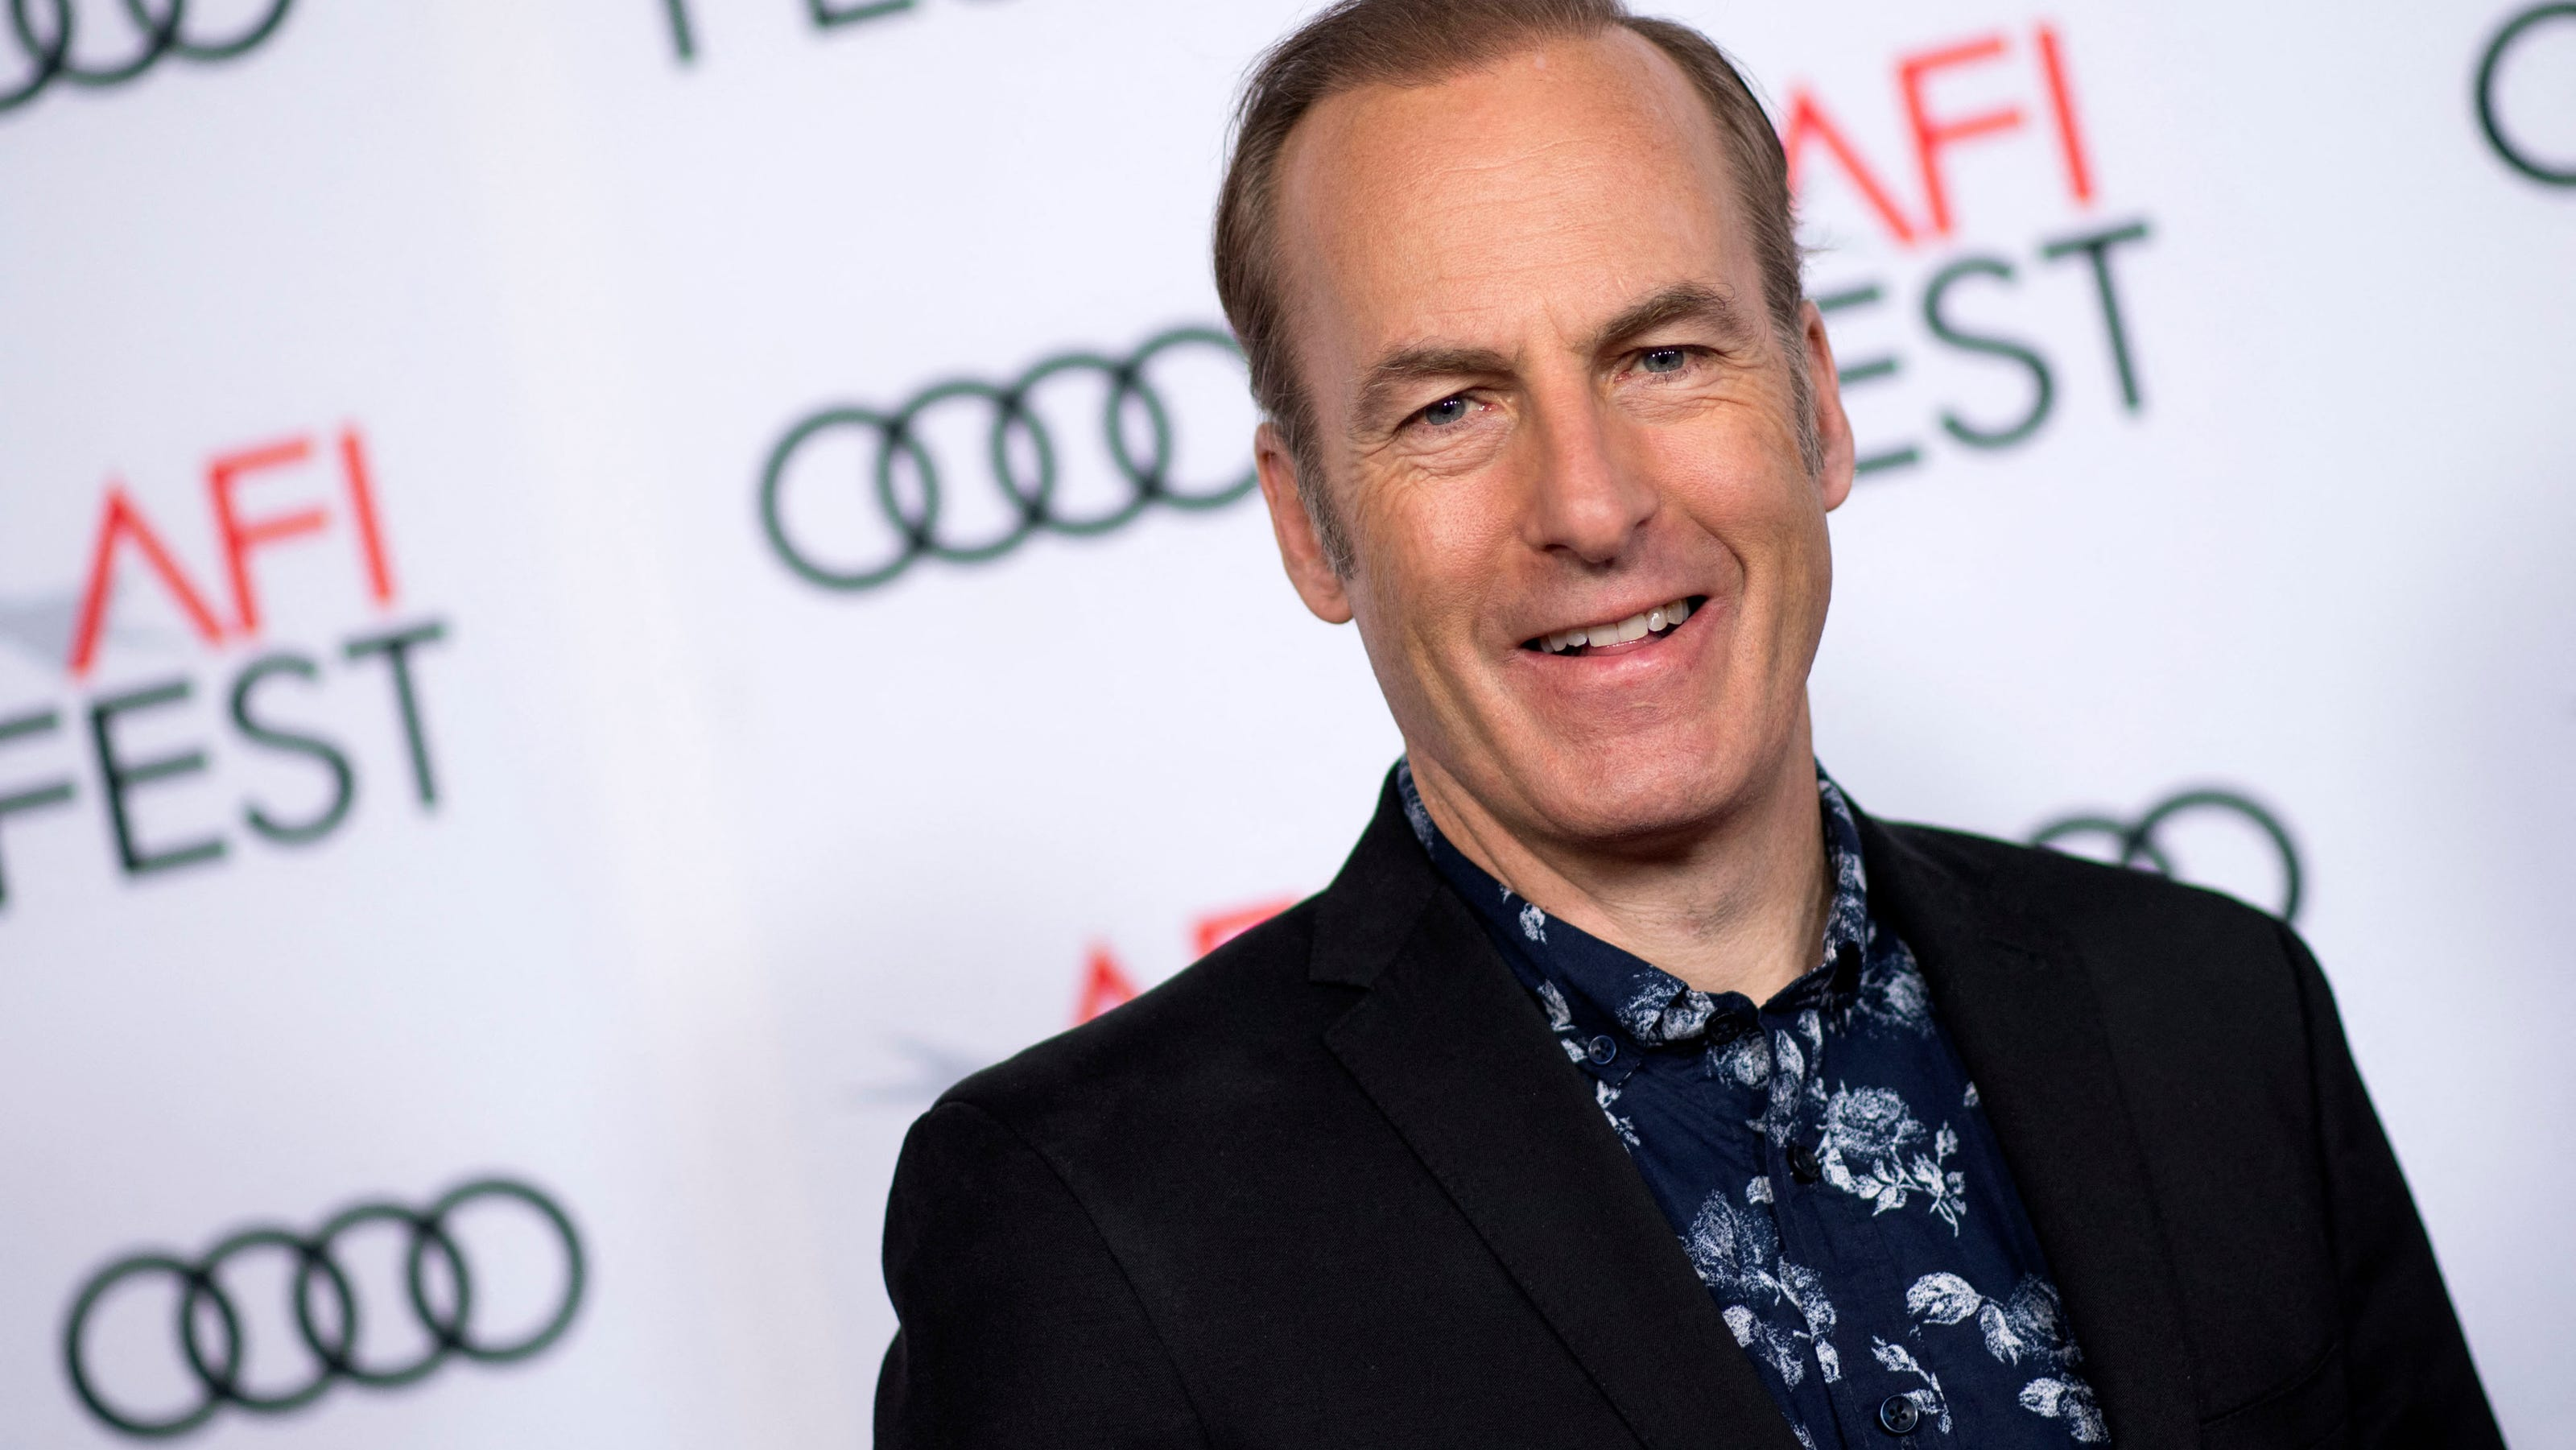 Bob Odenkirk says he's OK after suffering a 'small heart attack' on 'Better Call Saul' set